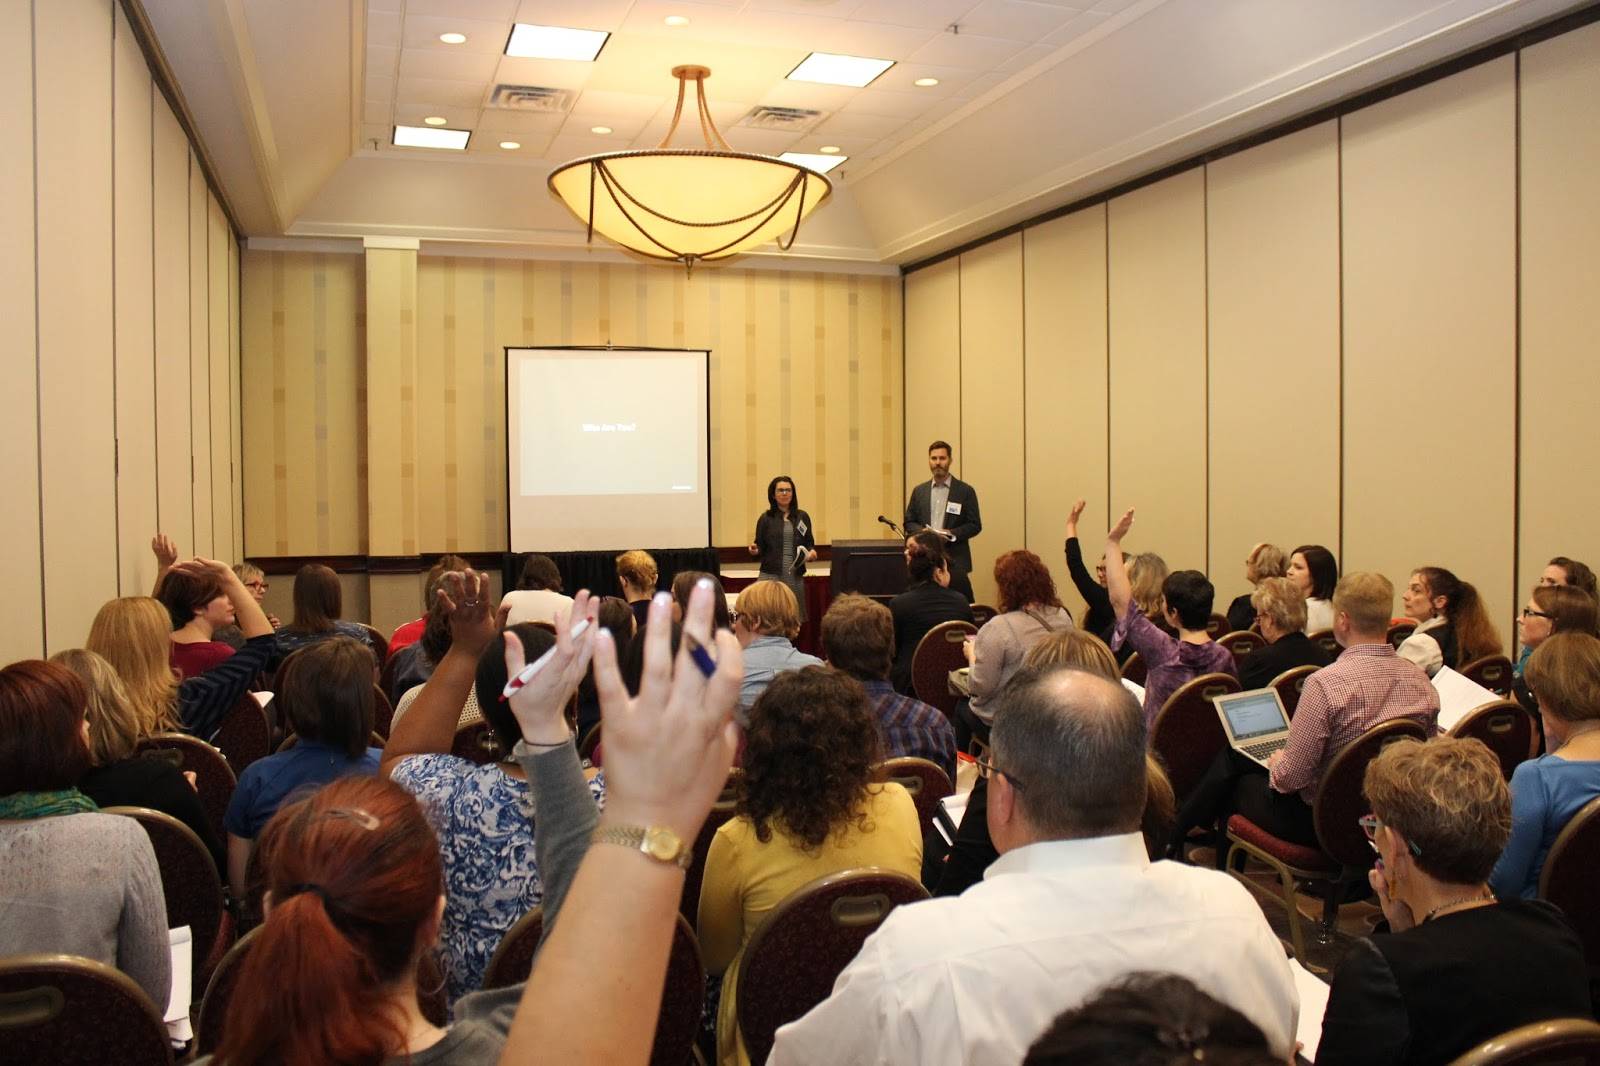 the m word marketing libraries potential presentation topics